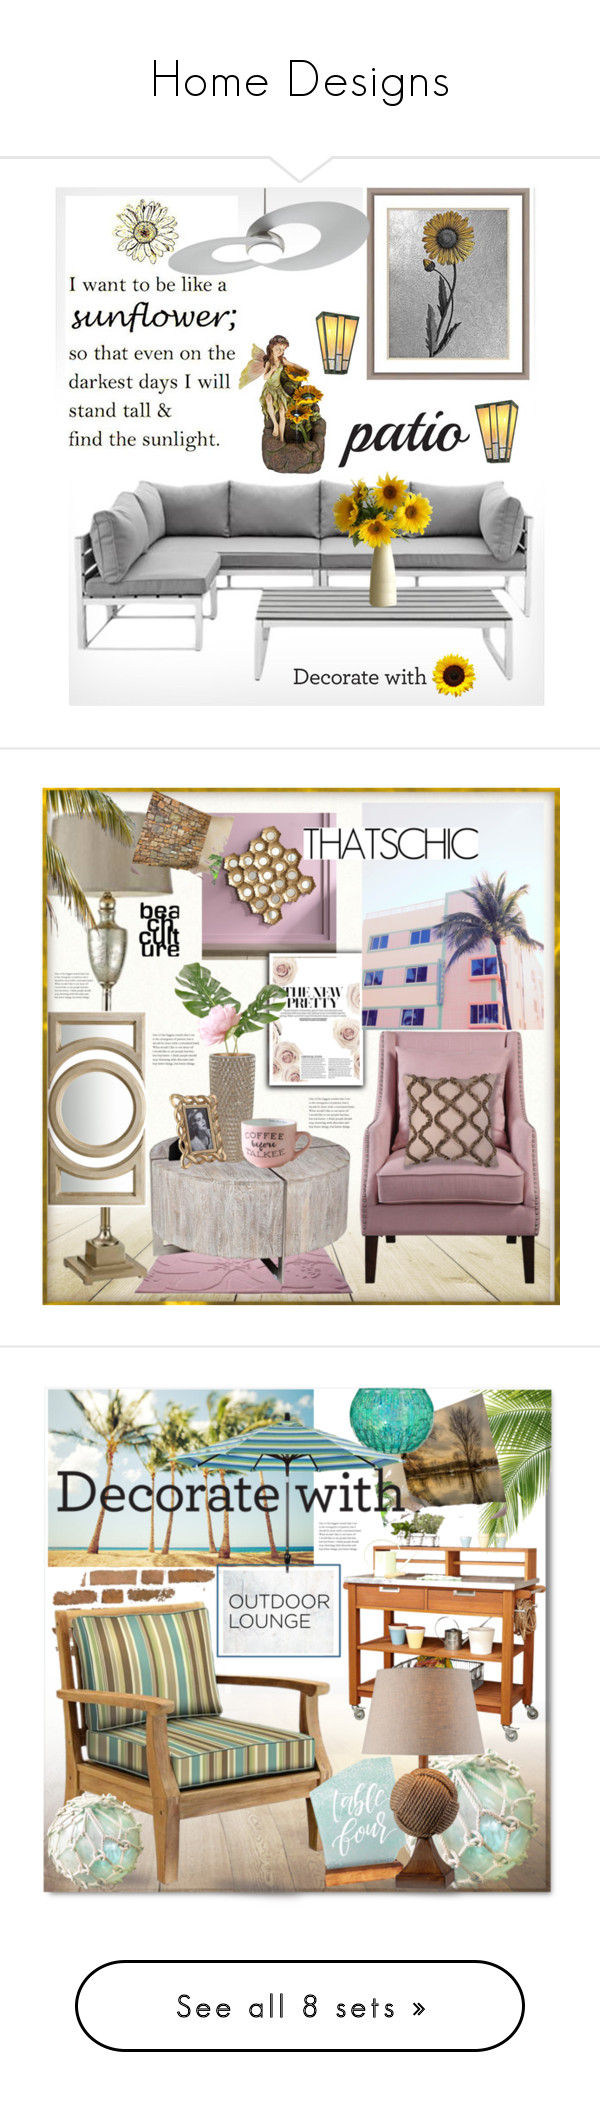 Home Designs By Coastaldesigns Liked On Polyvore Featuring